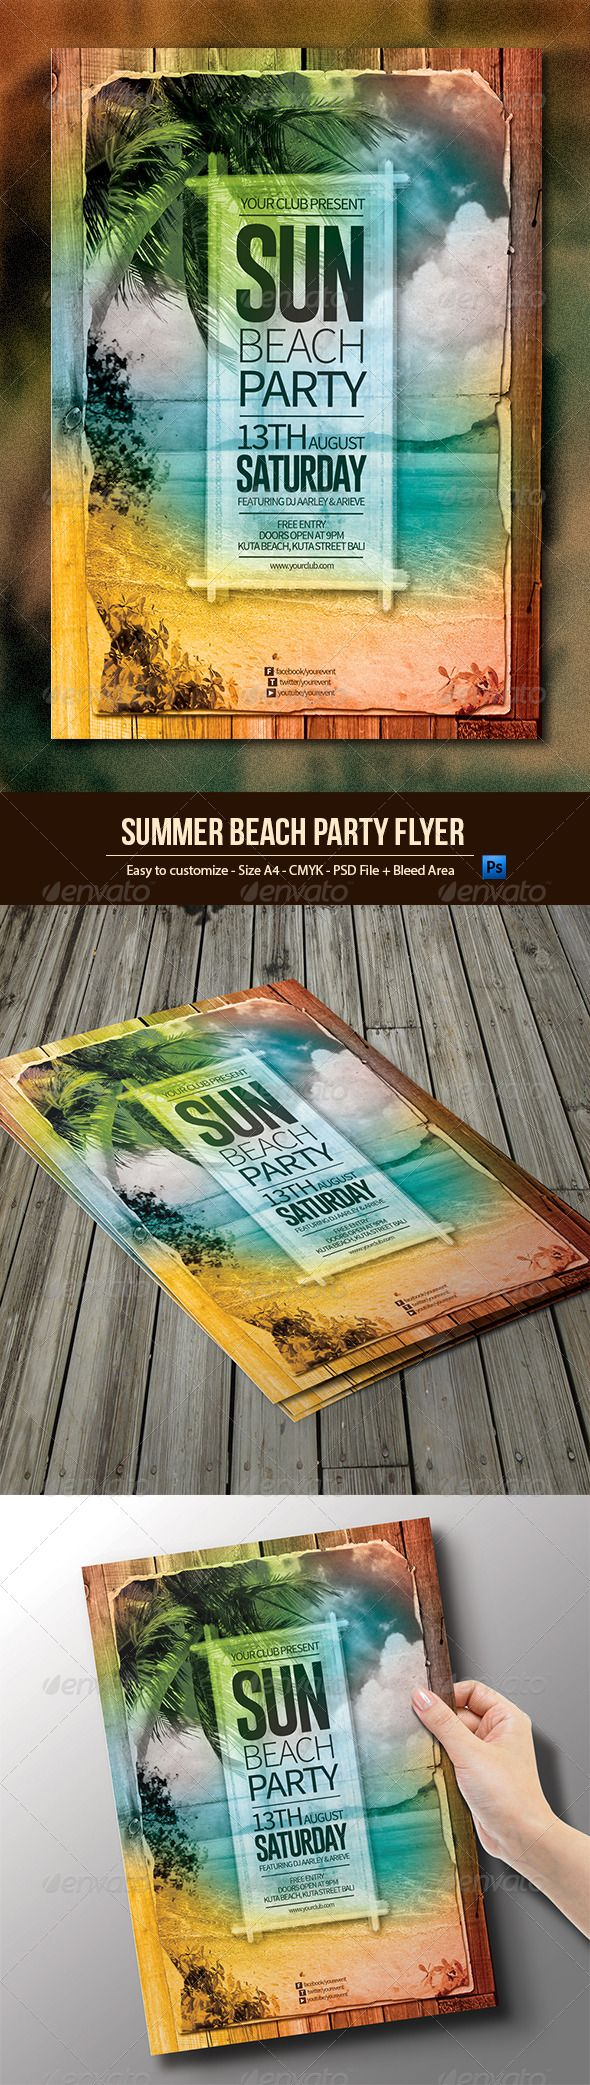 Summer Beach Party Flyer Template PSD | Buy and Download: http://graphicriver.net/item/summer-beach-party-flyer/8051873?WT.ac=category_thumb&WT.z_author=arifpoernomo&ref=ksioks